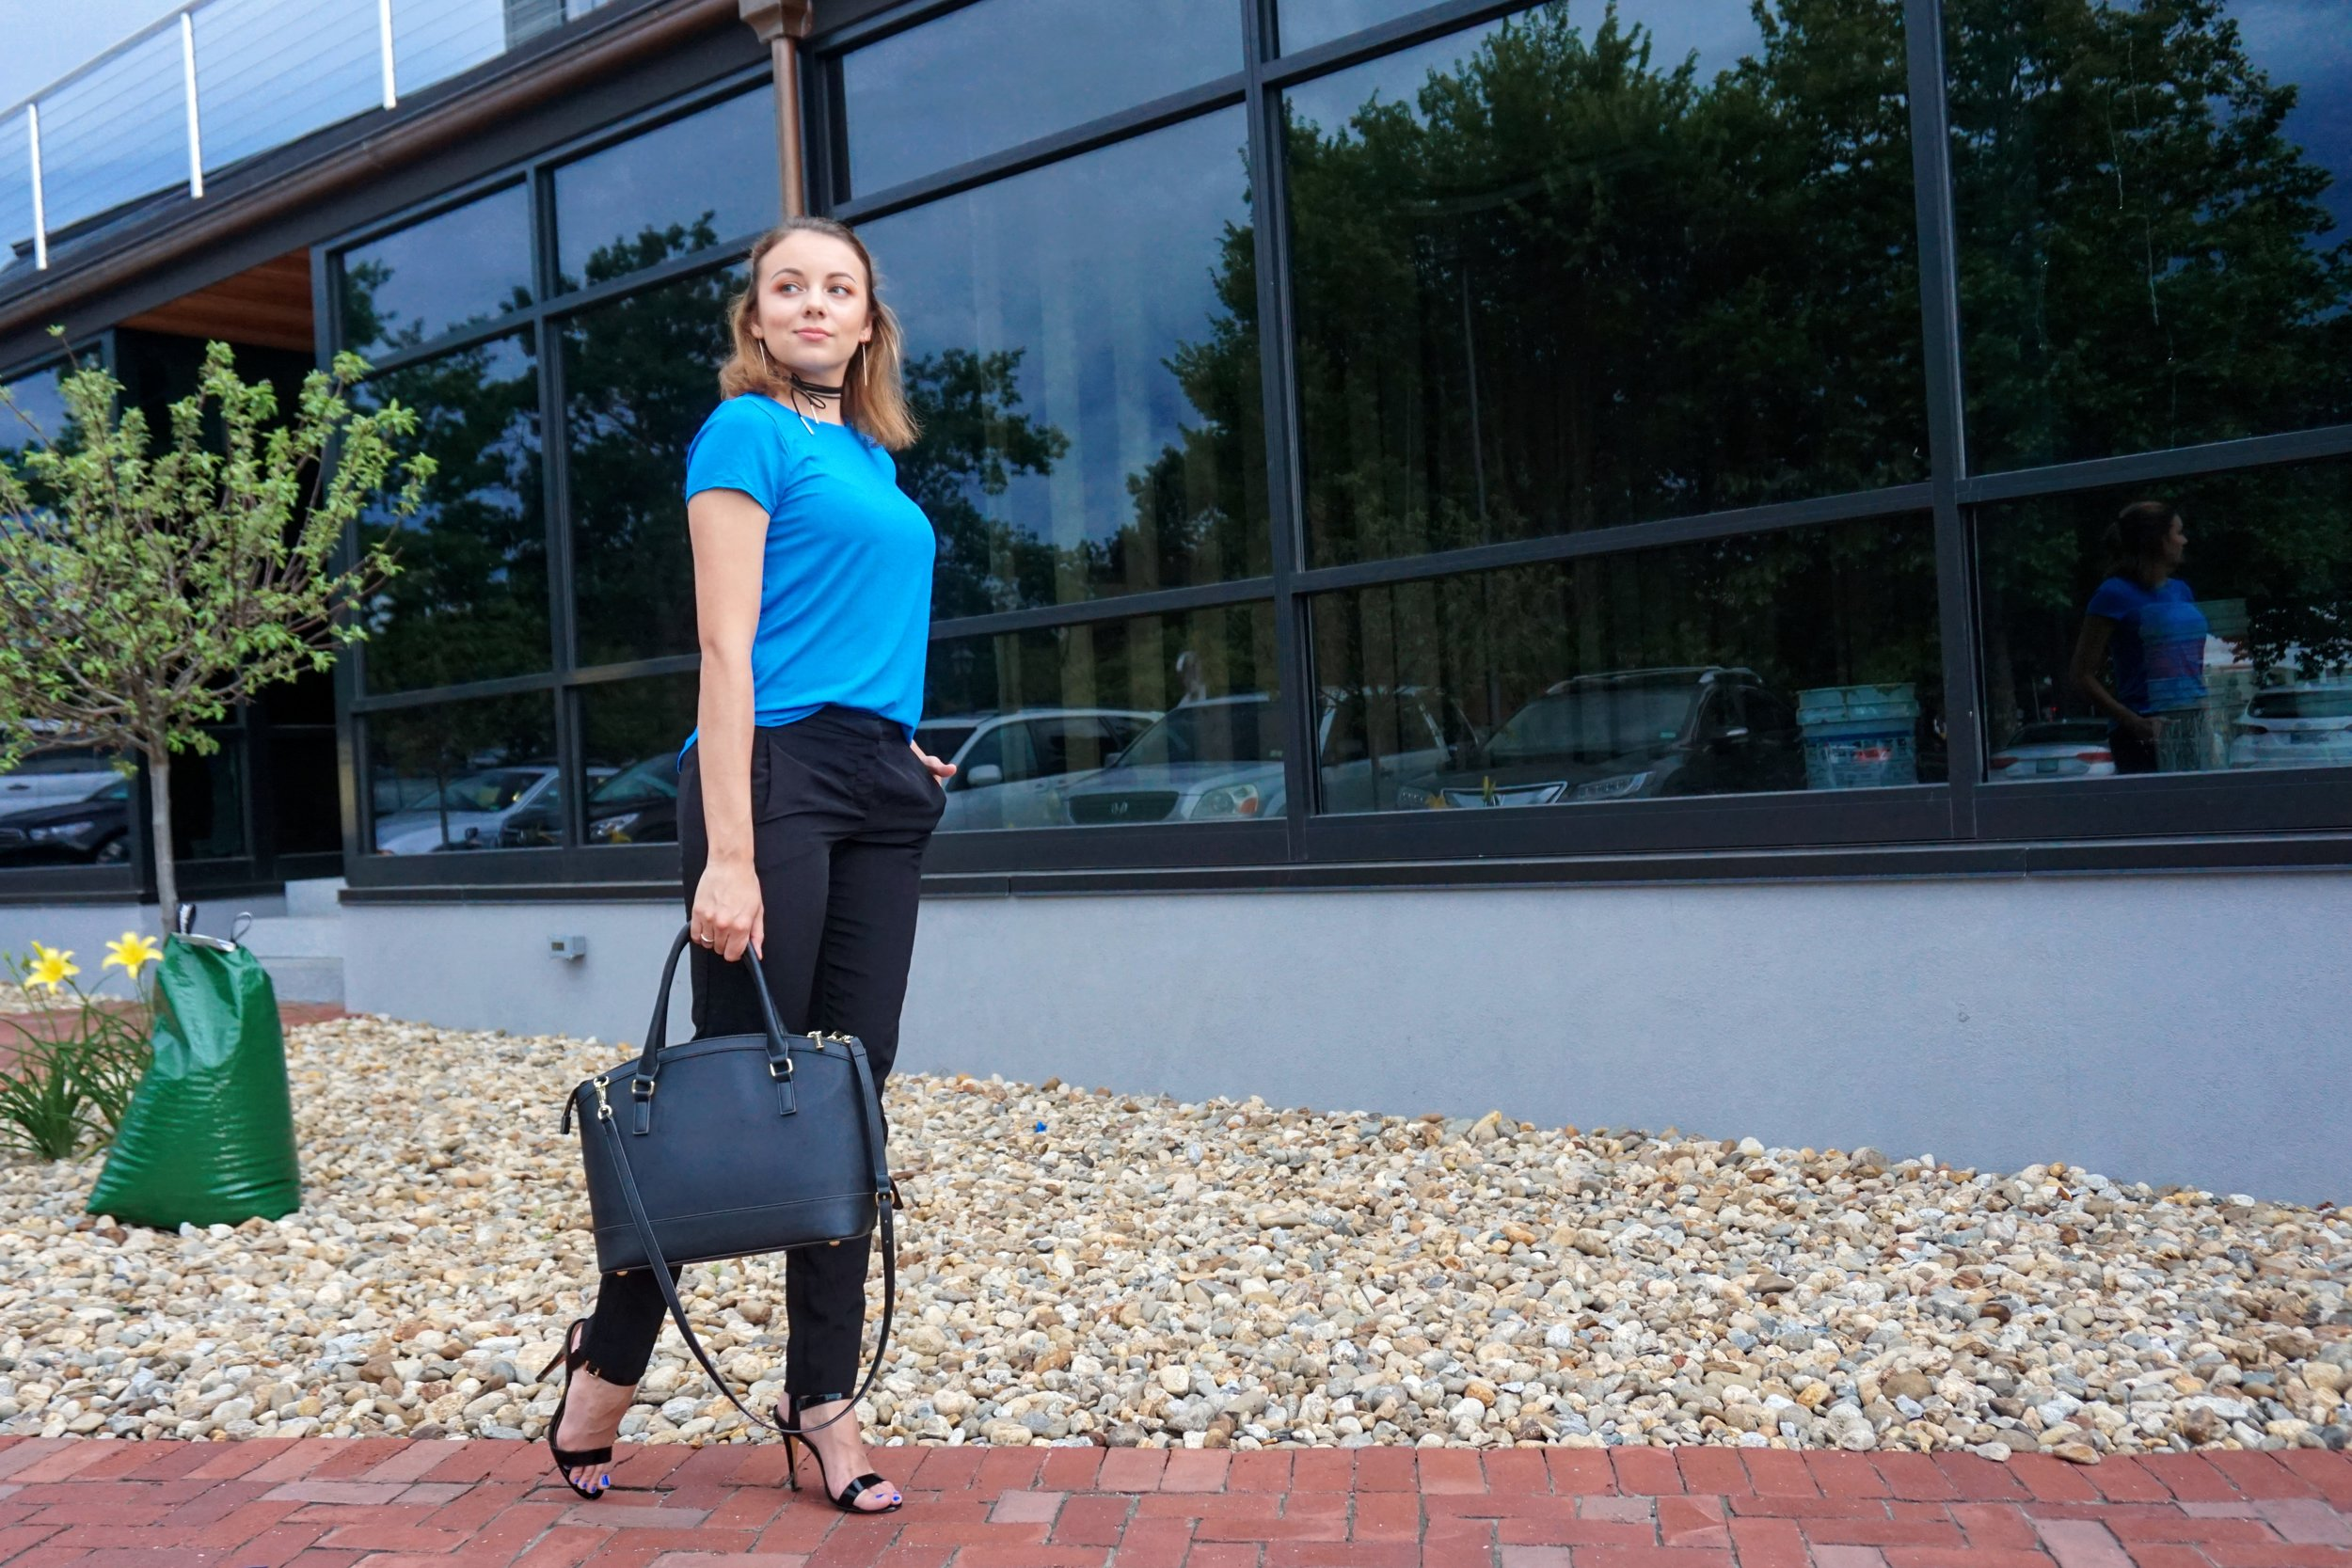 Outfit details: black pants, high heeled sandals, black purse, simple blue top, and a black choker.